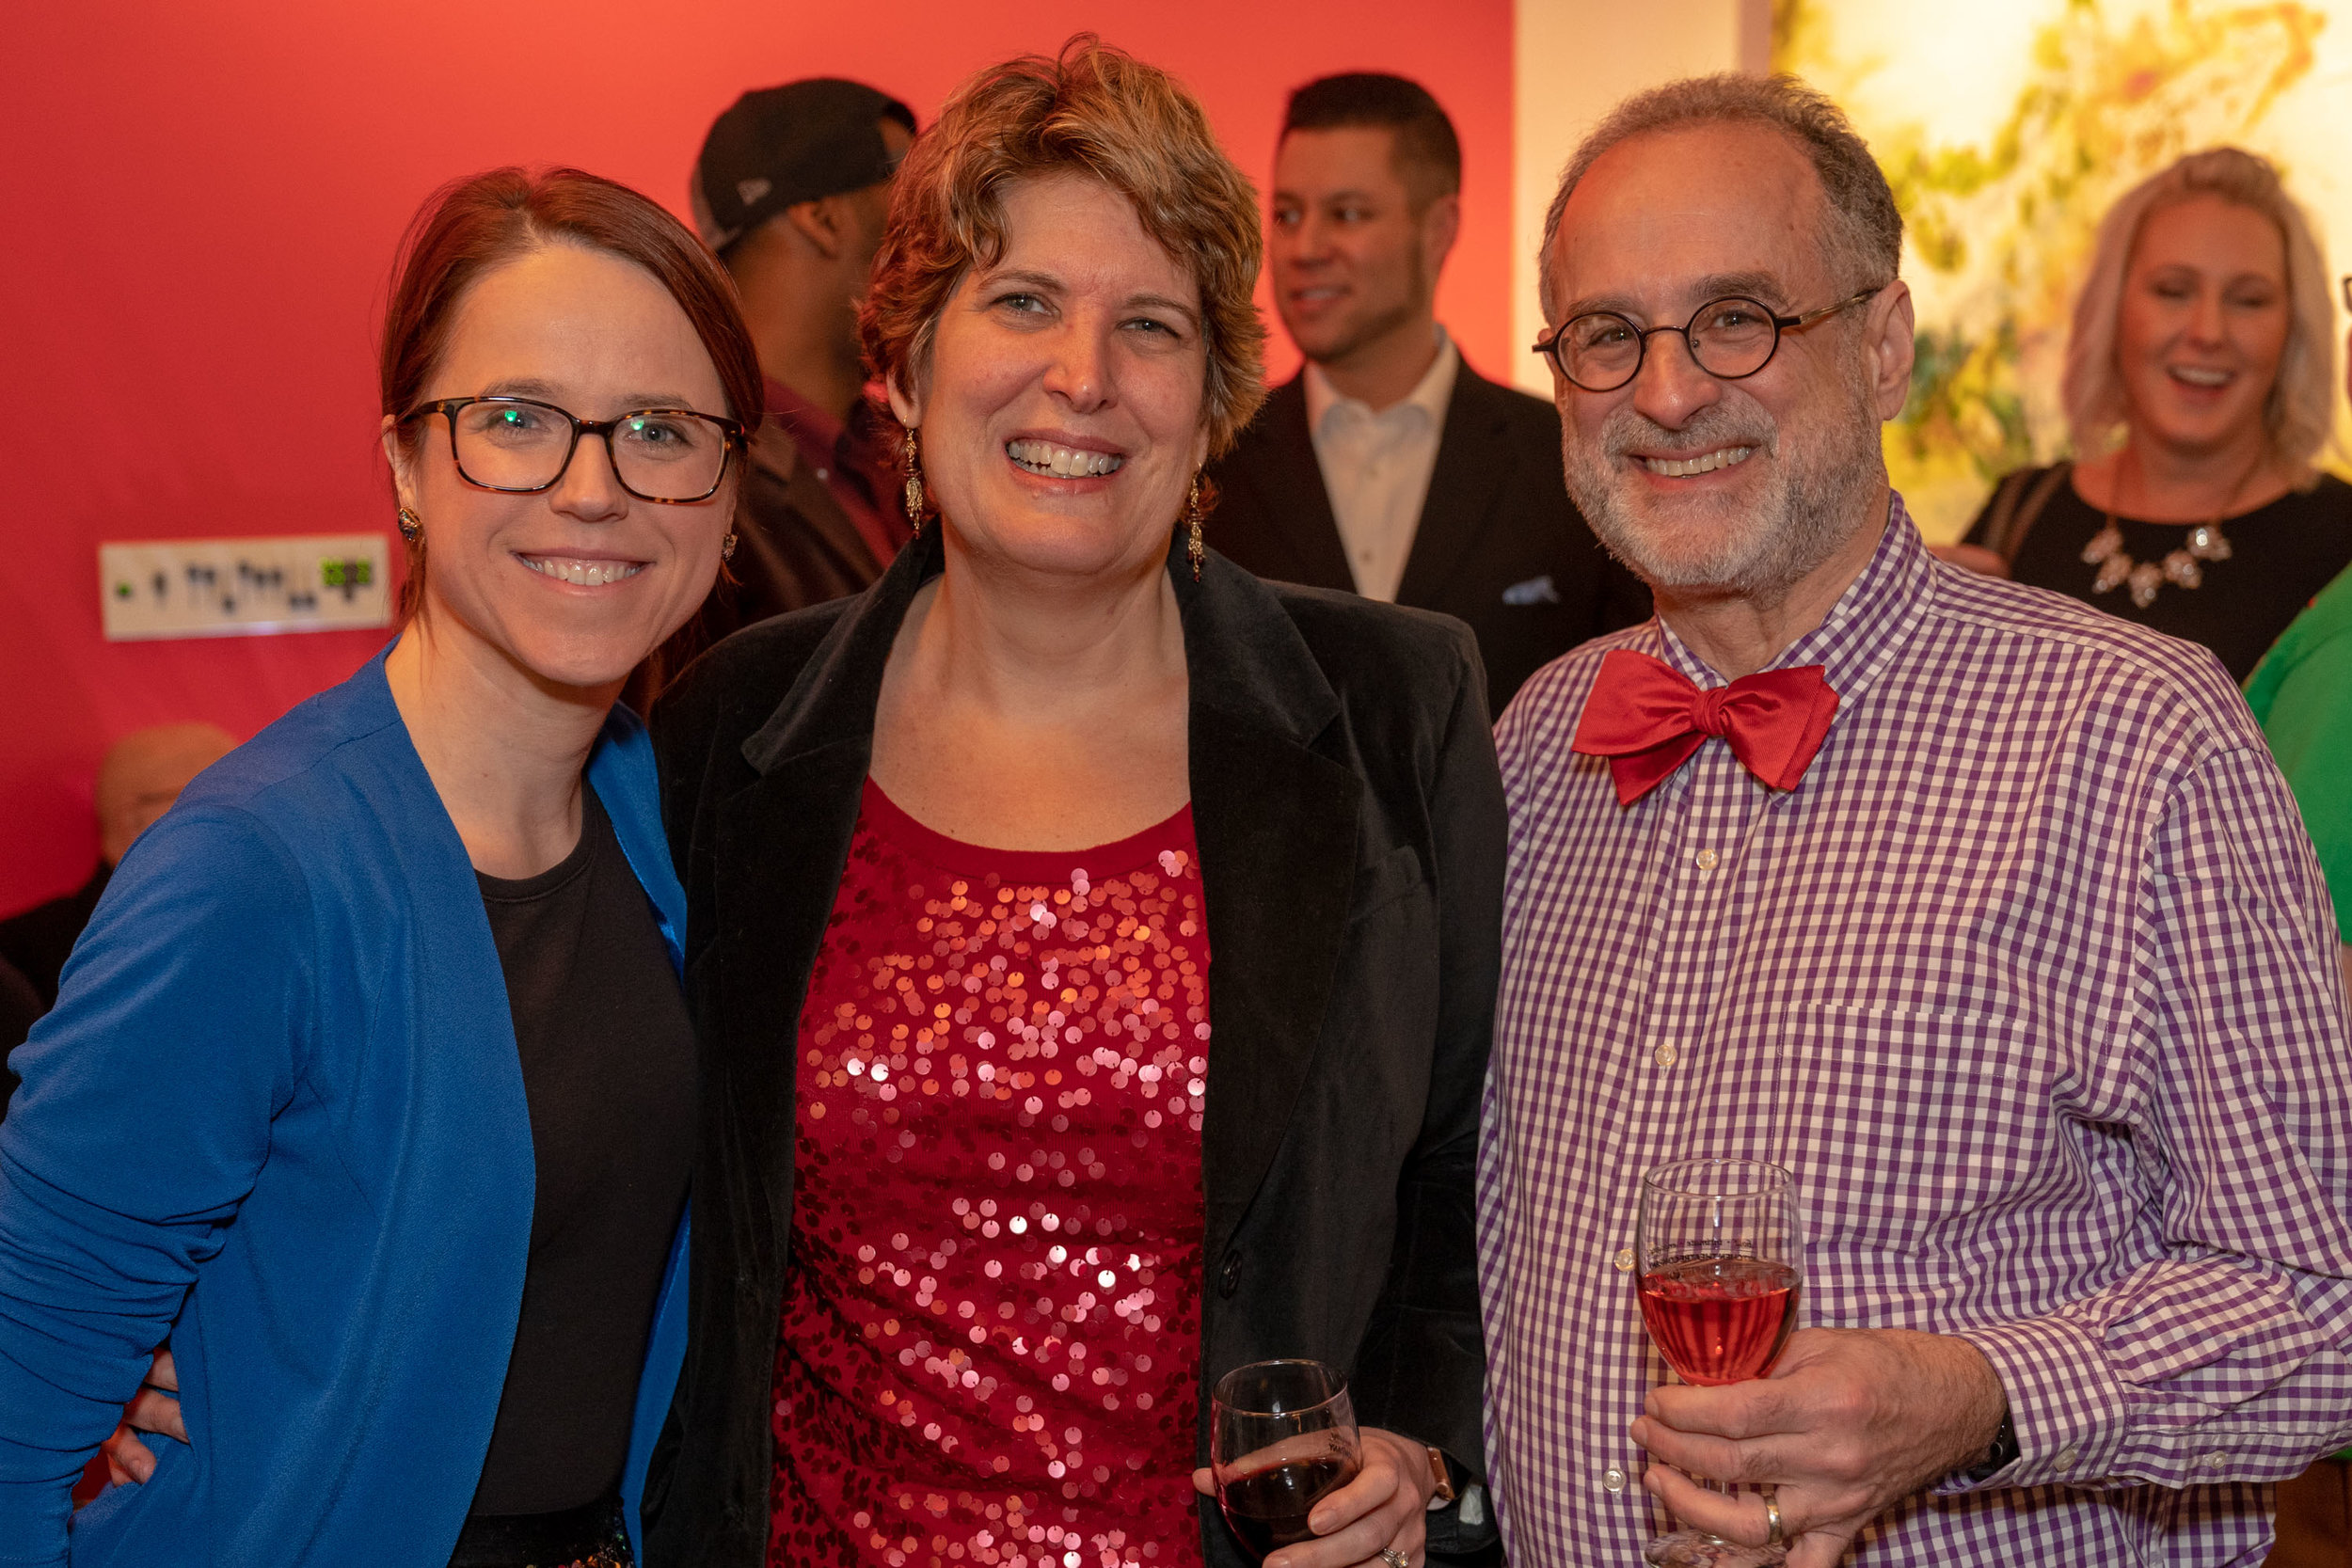 KTC_Holiday_Party_2018-007.jpg